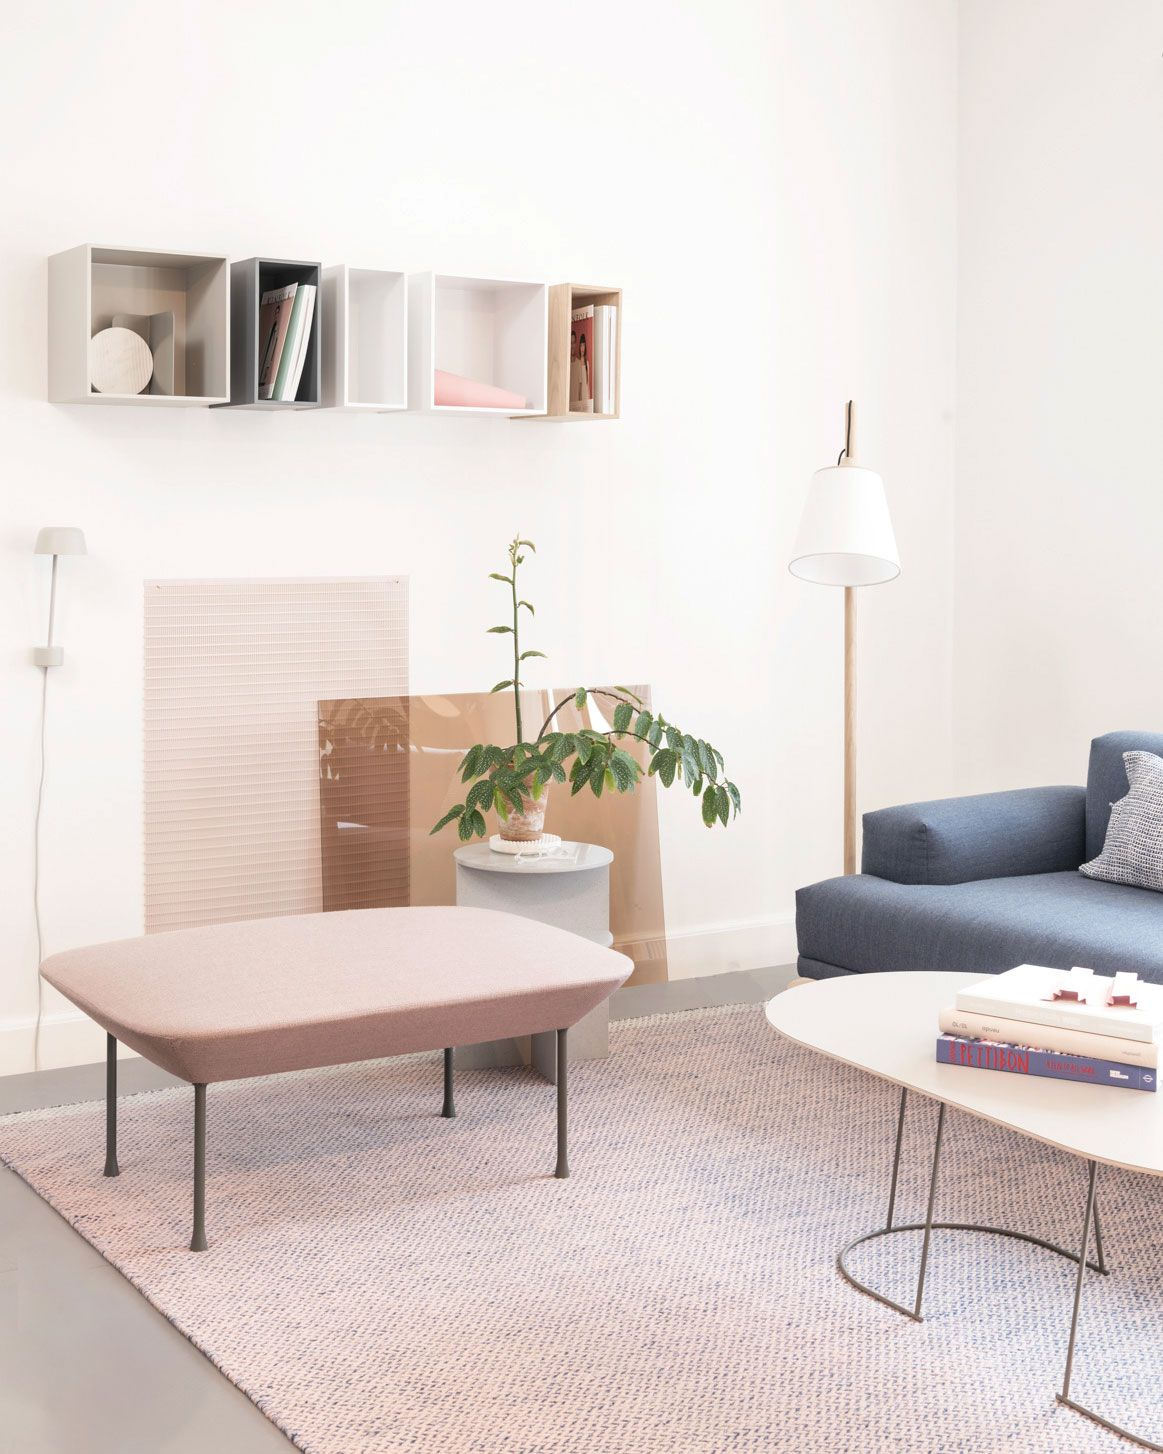 Scandinavian Home Decor Inspiration From Muuto The Oslo Sofa Family Unites Geometric Lines With A Light Form For The Refined Comfortable Lounging Experience